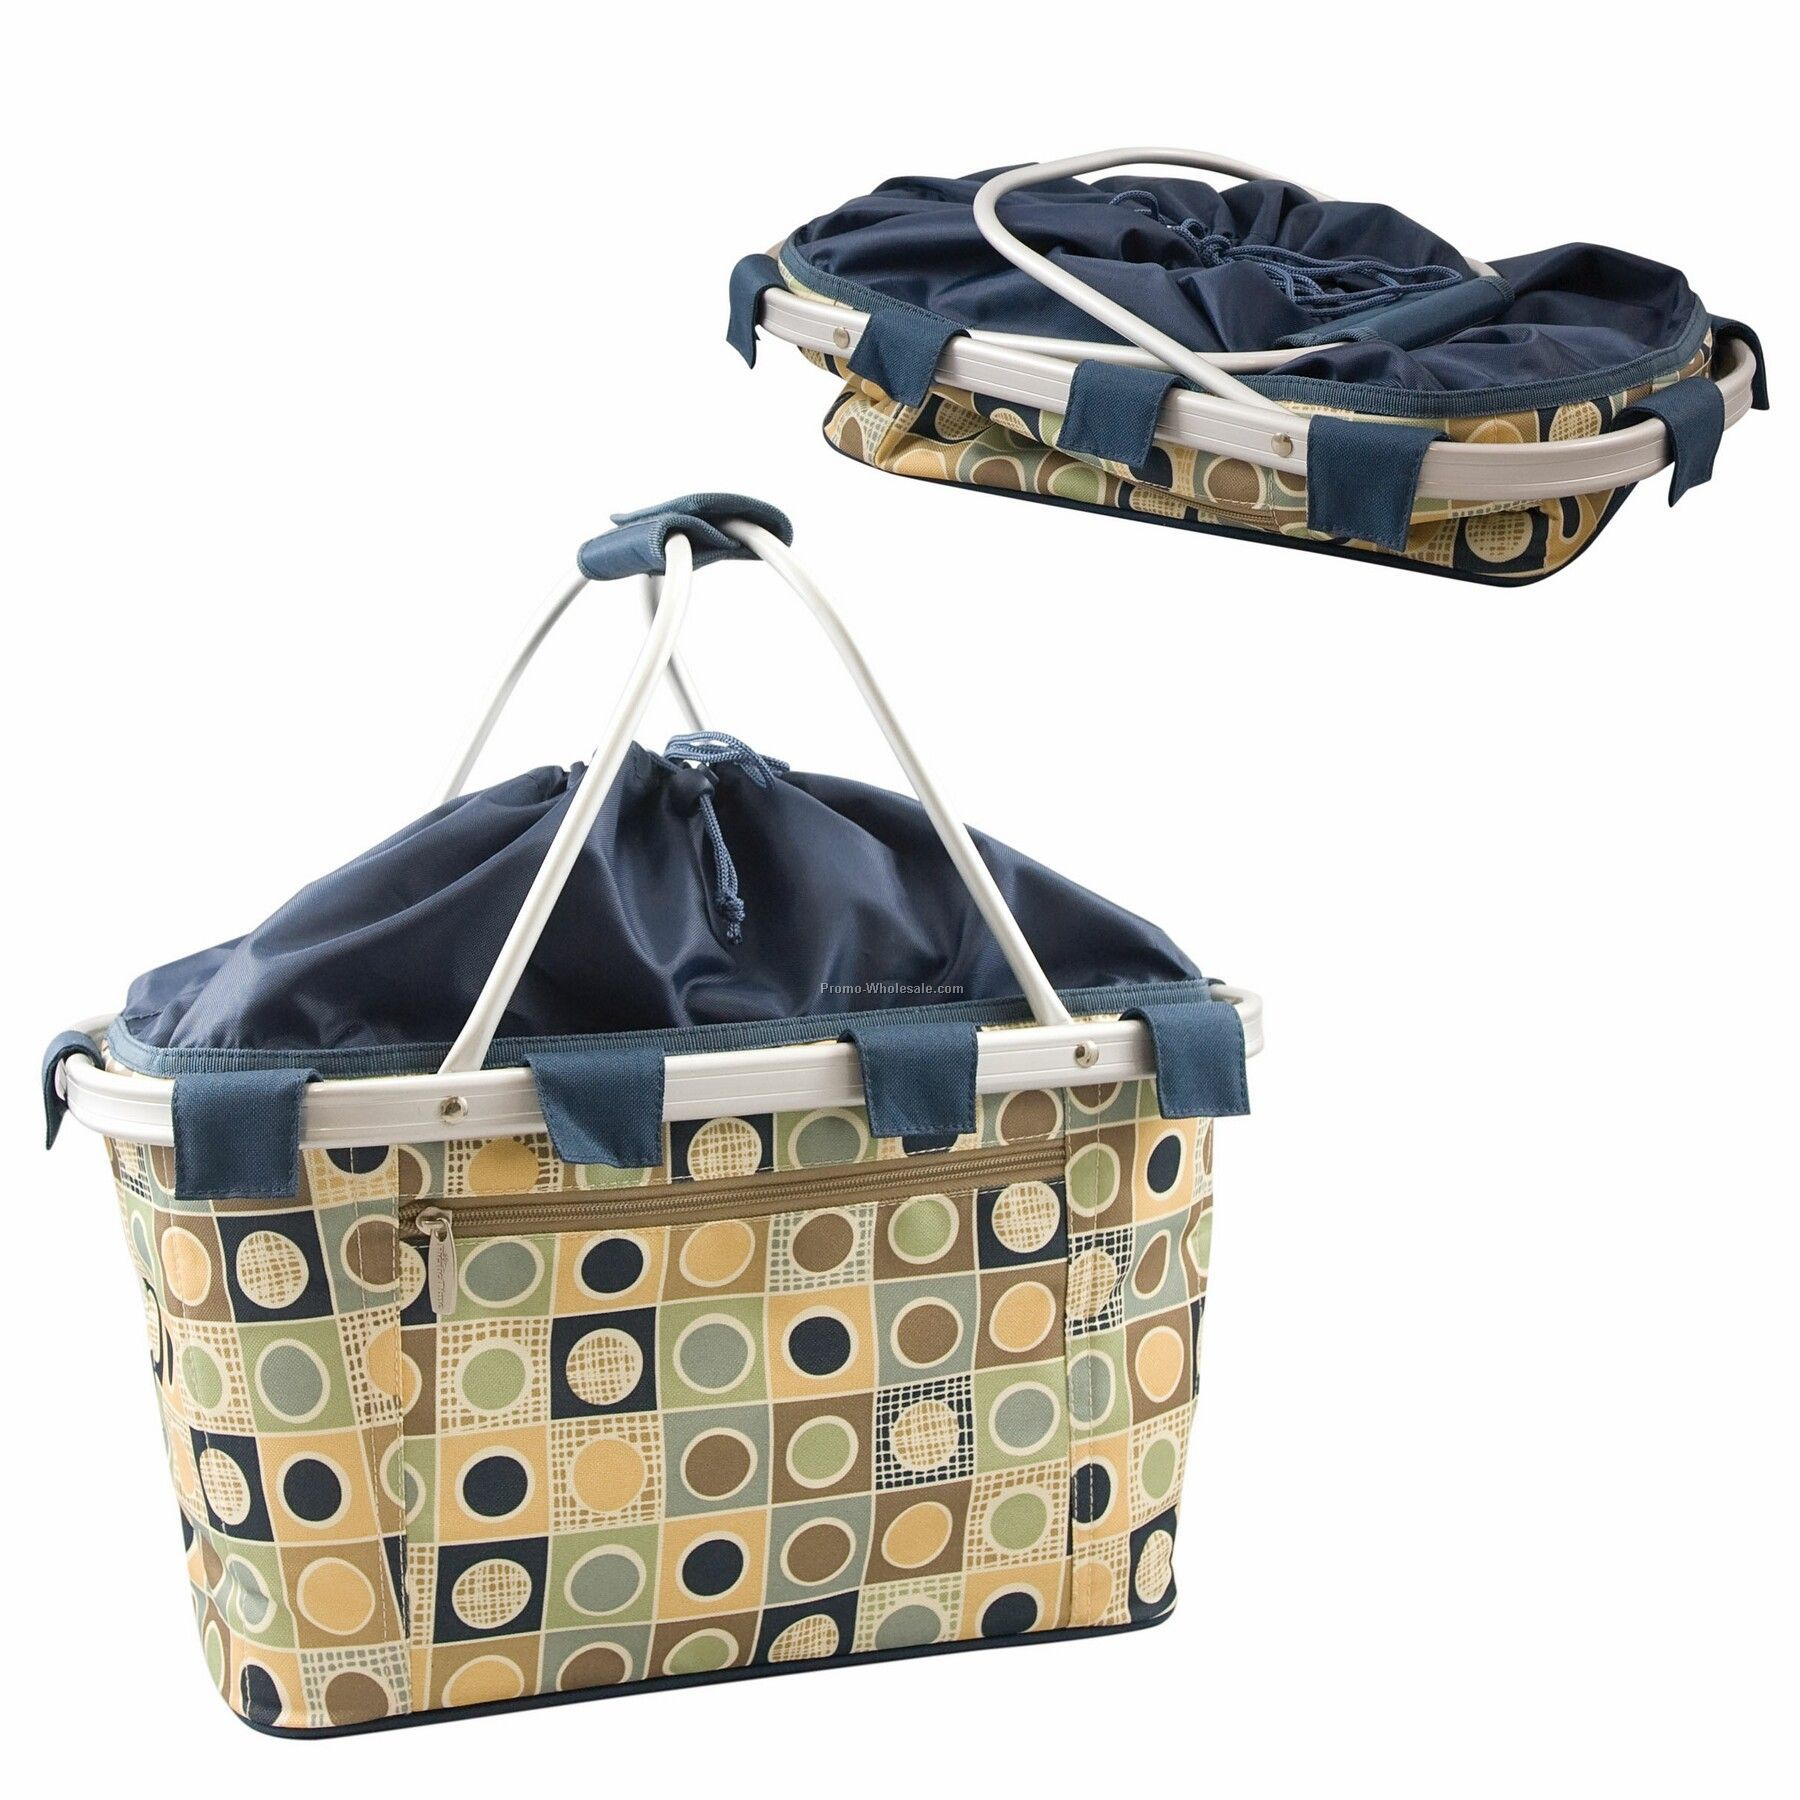 Metro - Equinox Insulated Basket With Waterproof Interior